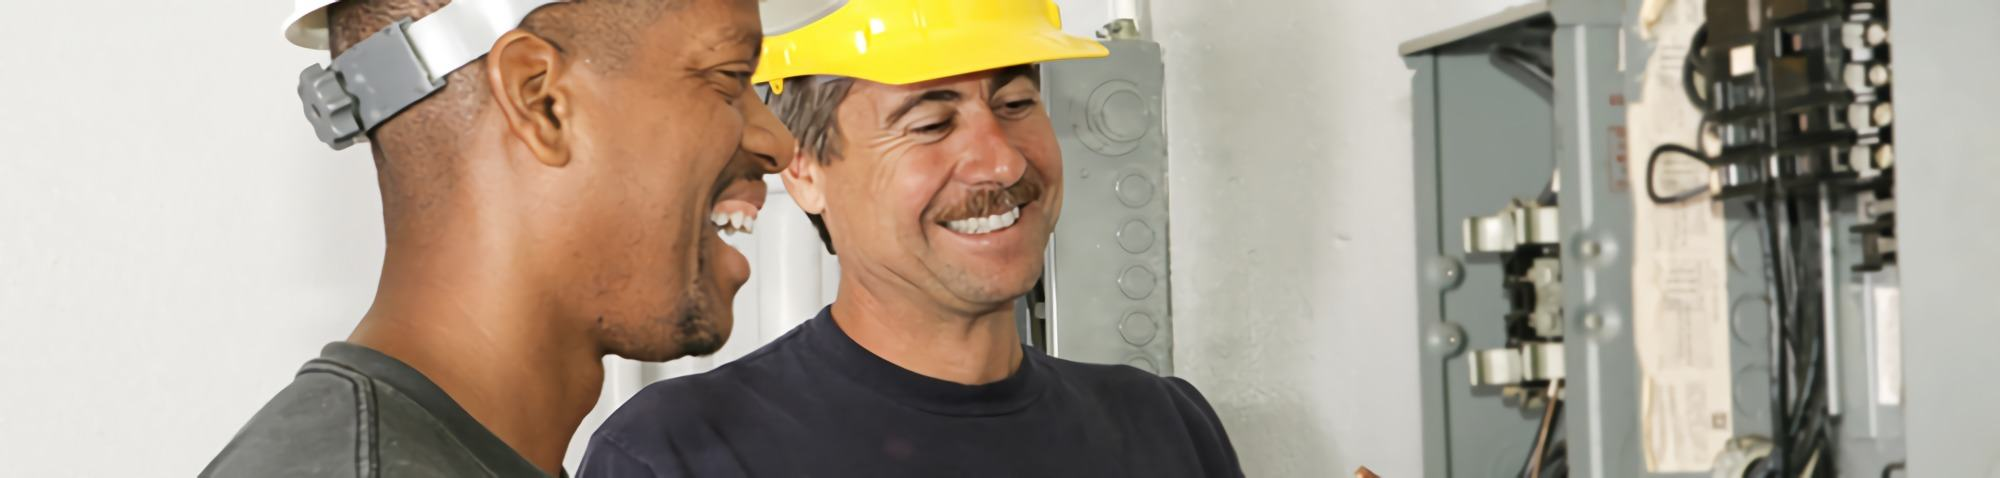 Electrician Student Training